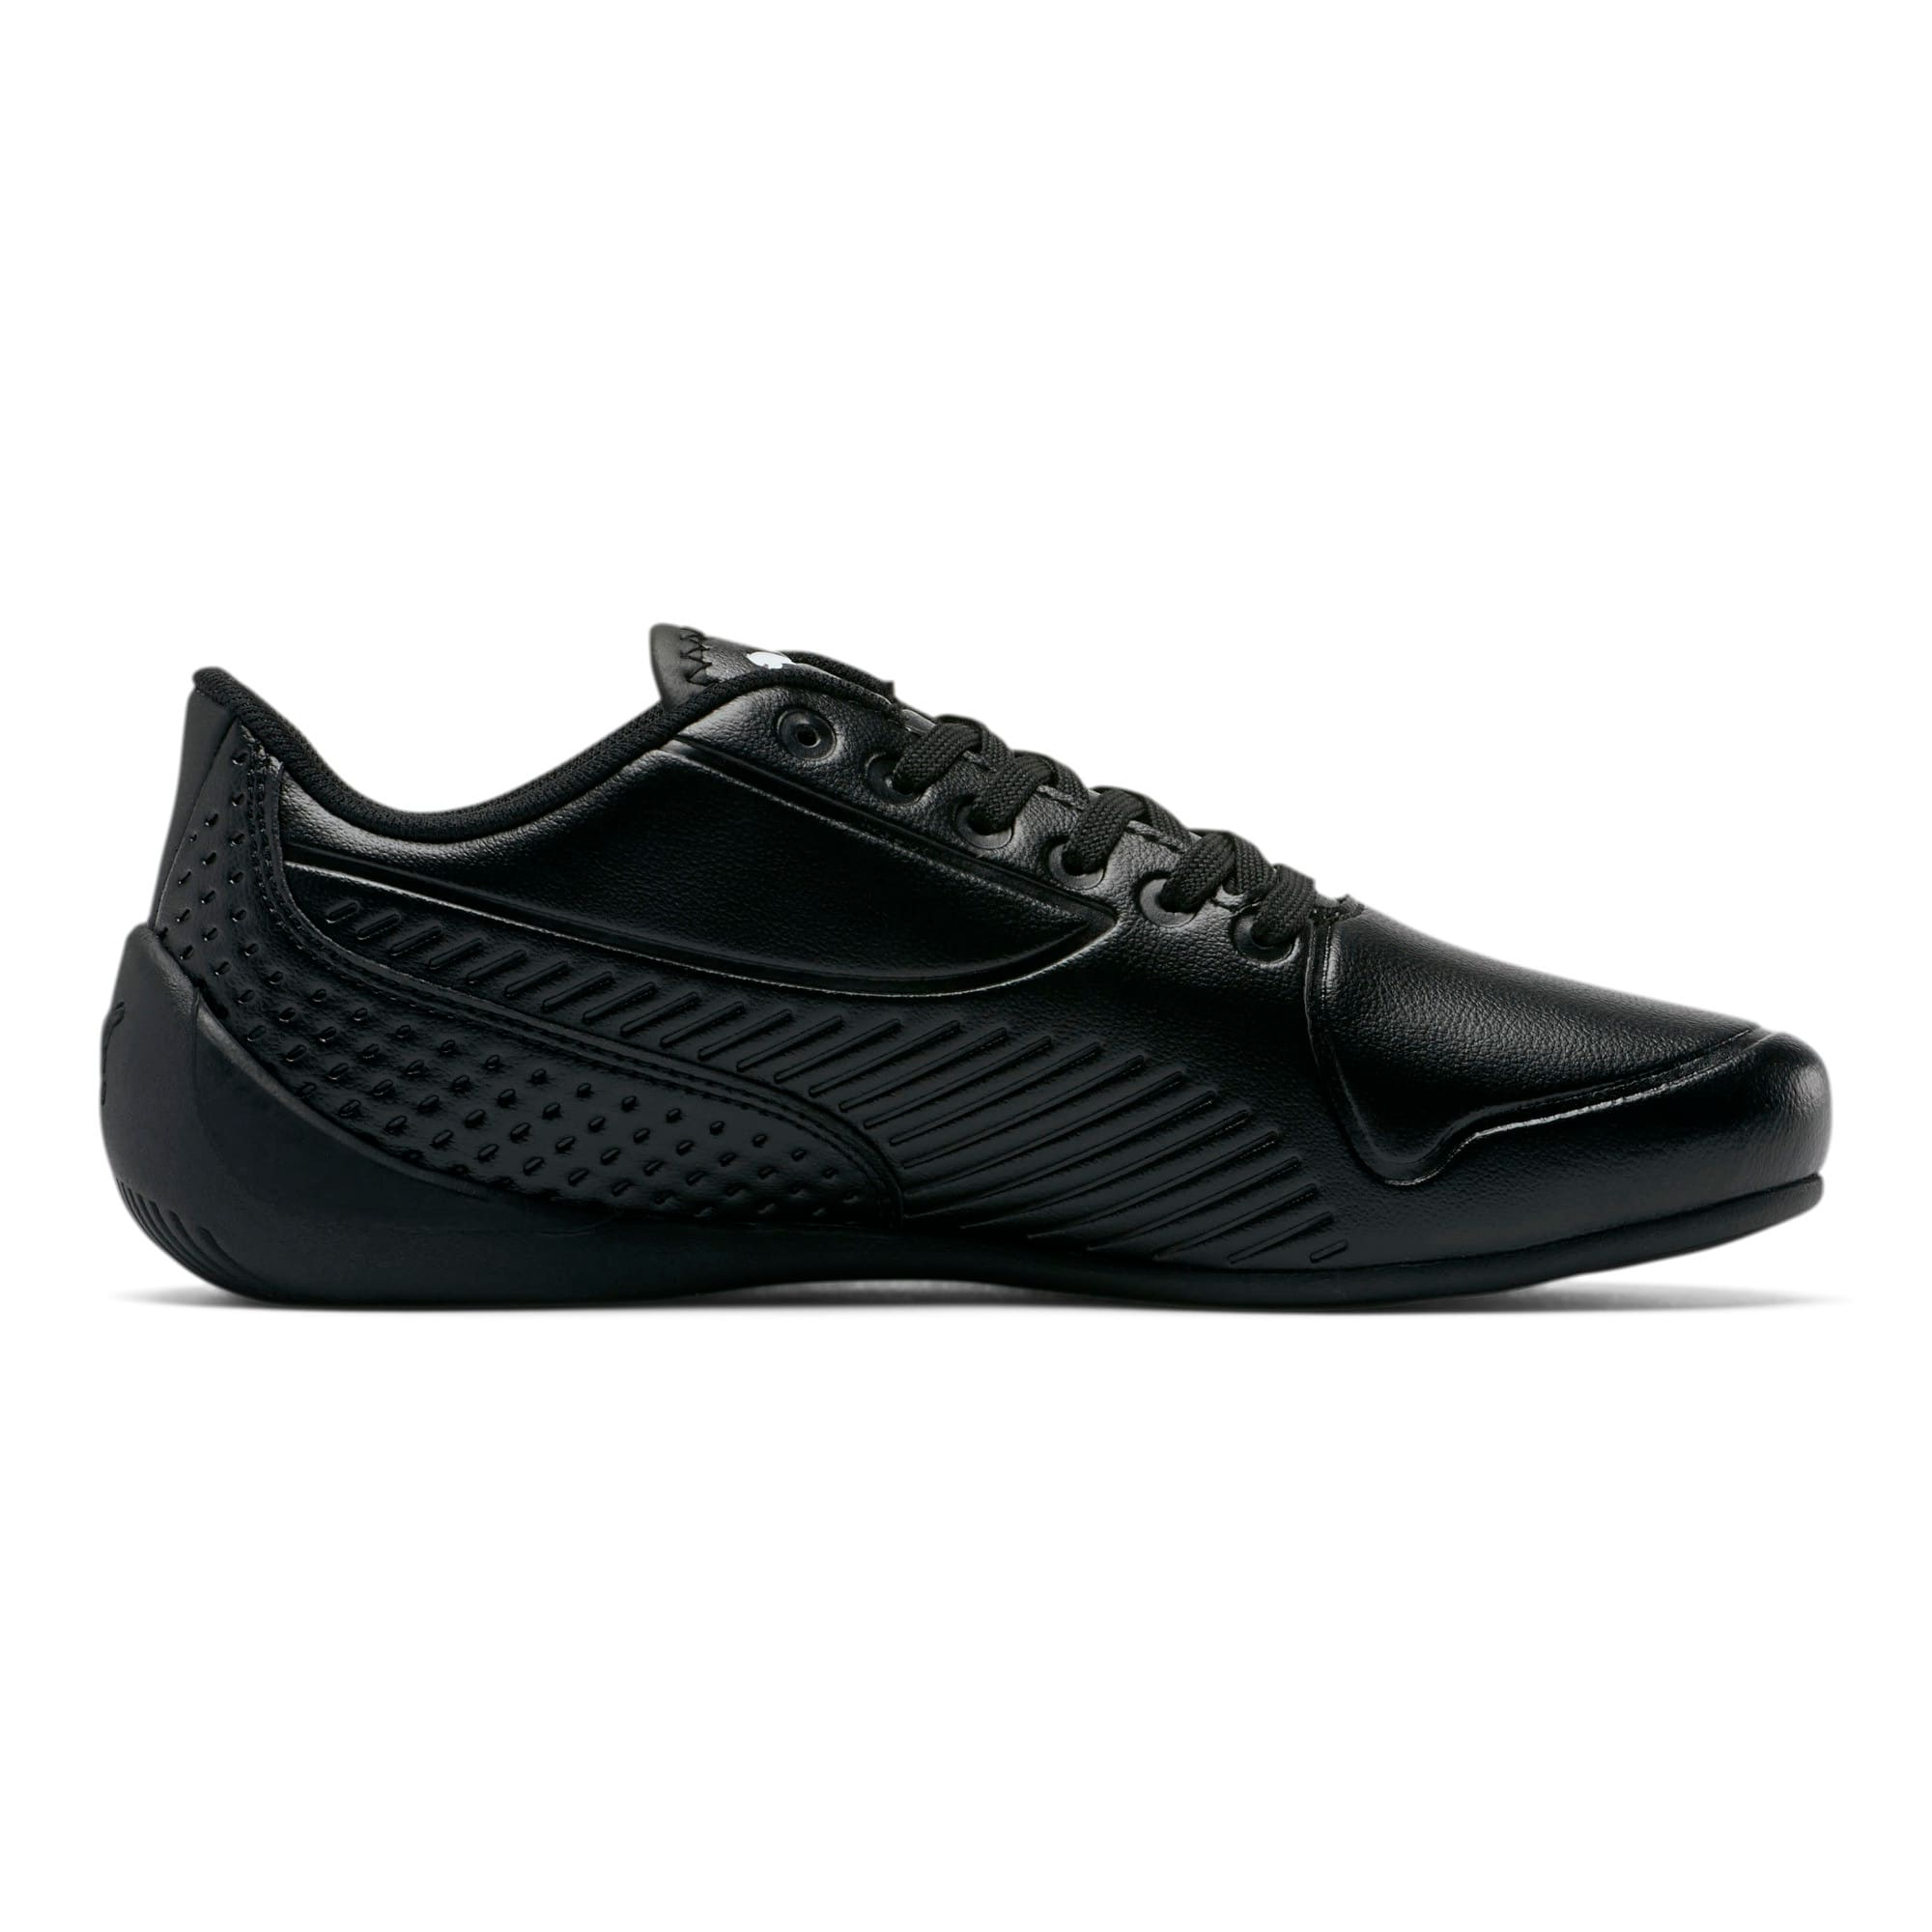 Thumbnail 5 of Drift Cat 7S Ultra Shoes JR, Puma Black-Puma Black, medium